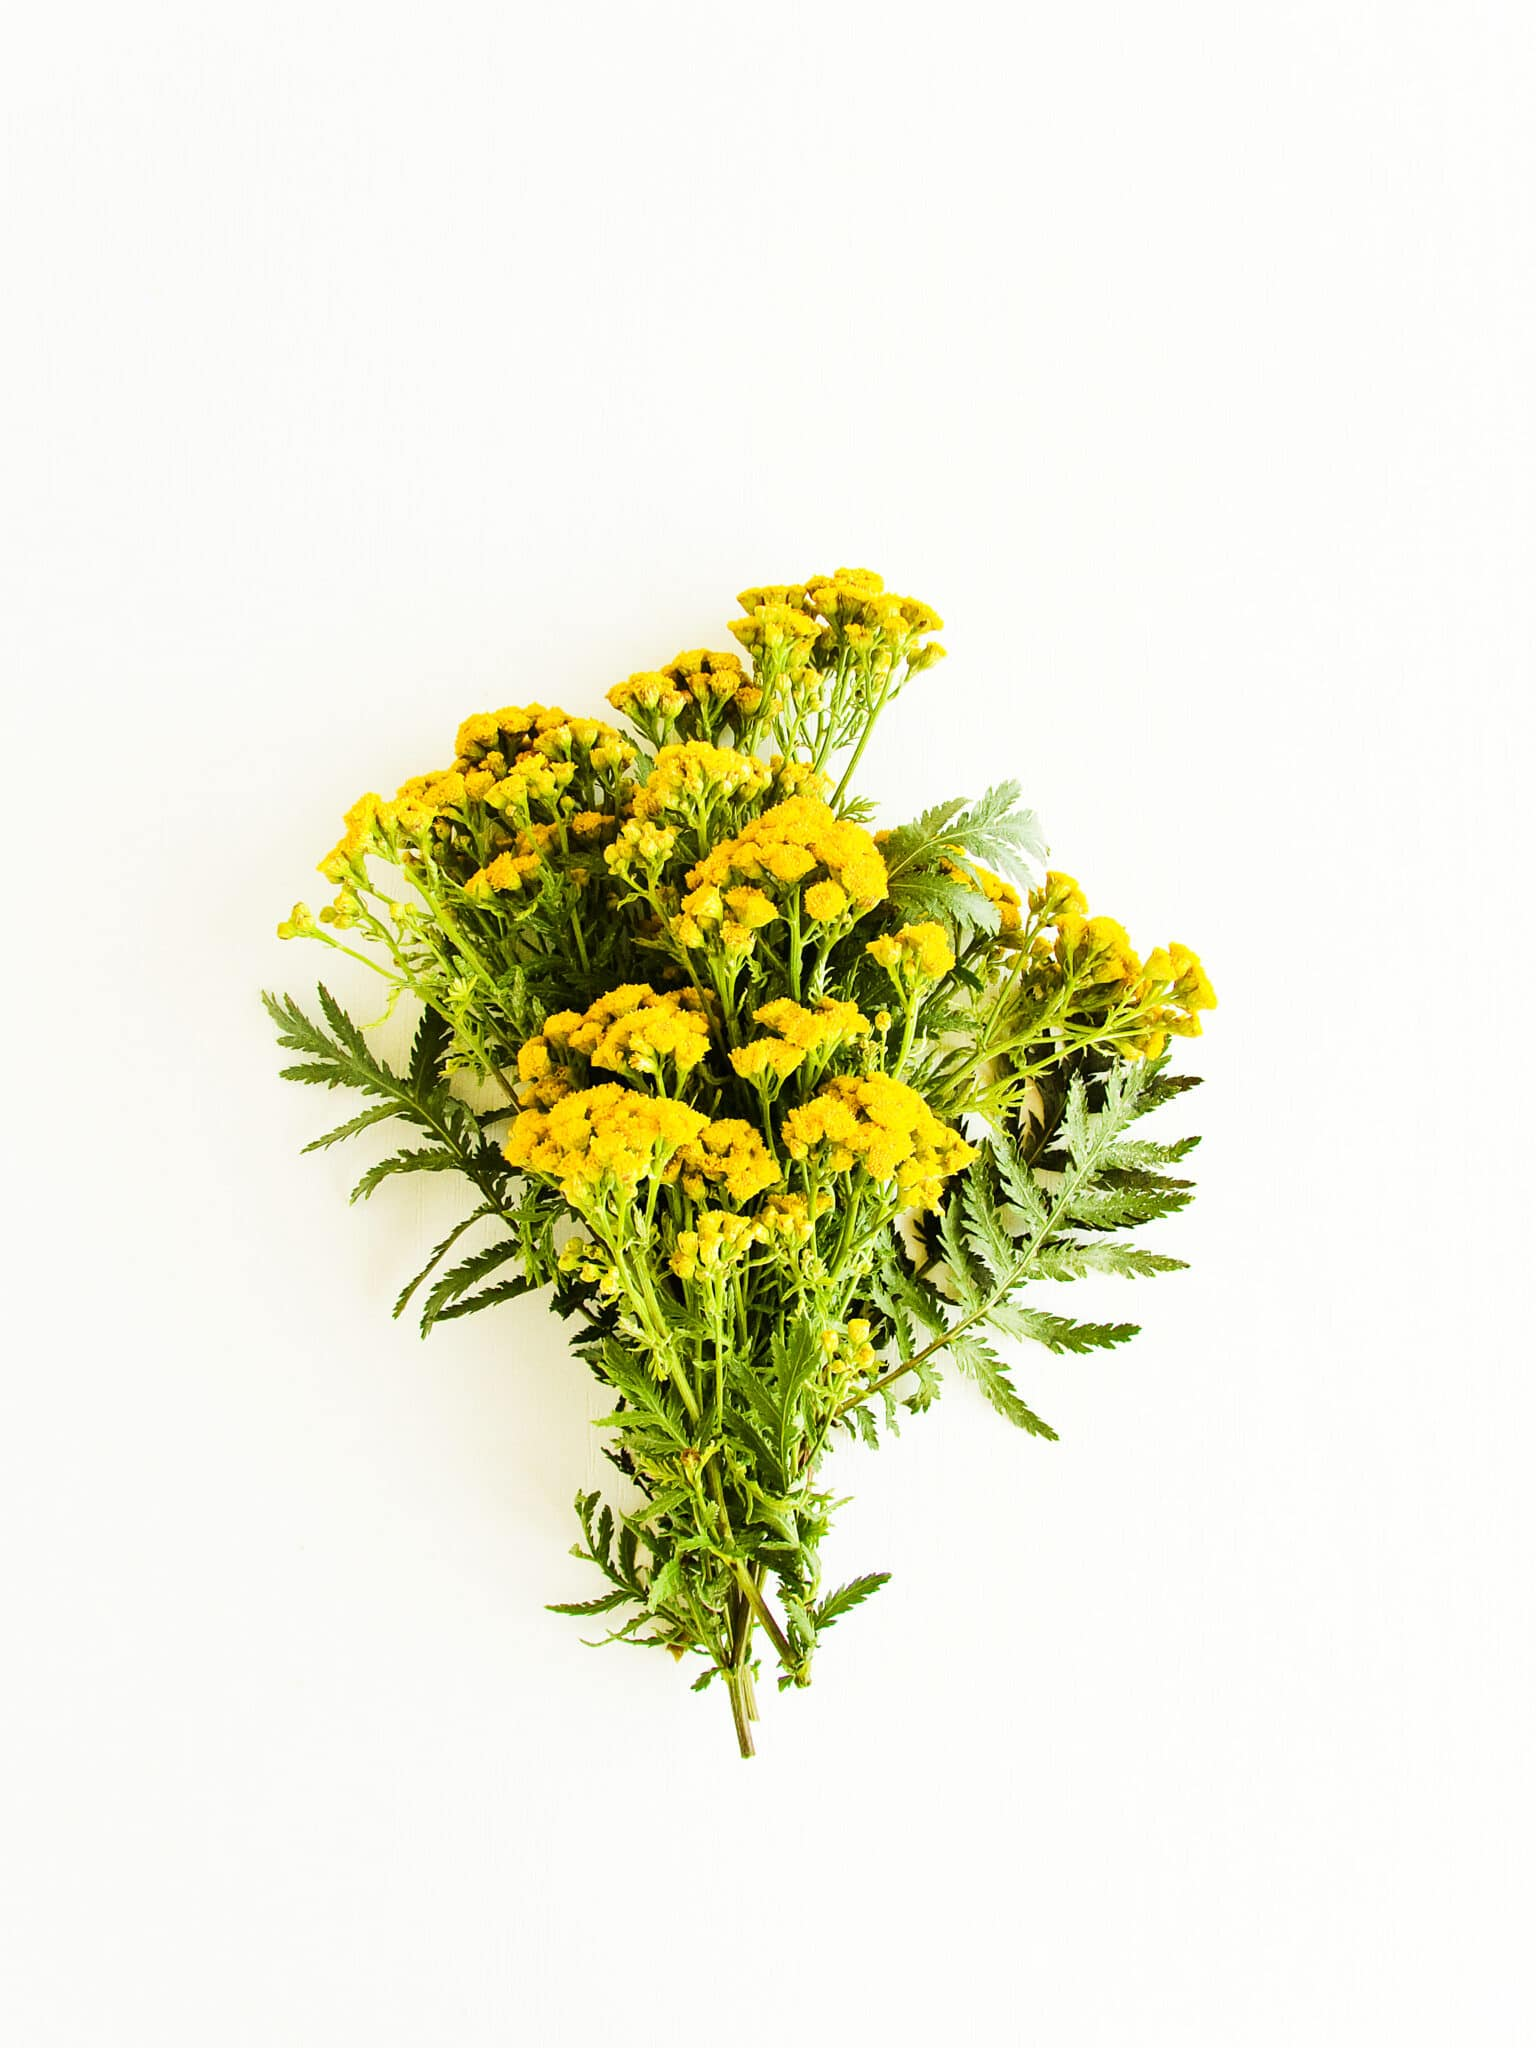 Bunched yarrow sprigs on a white background.